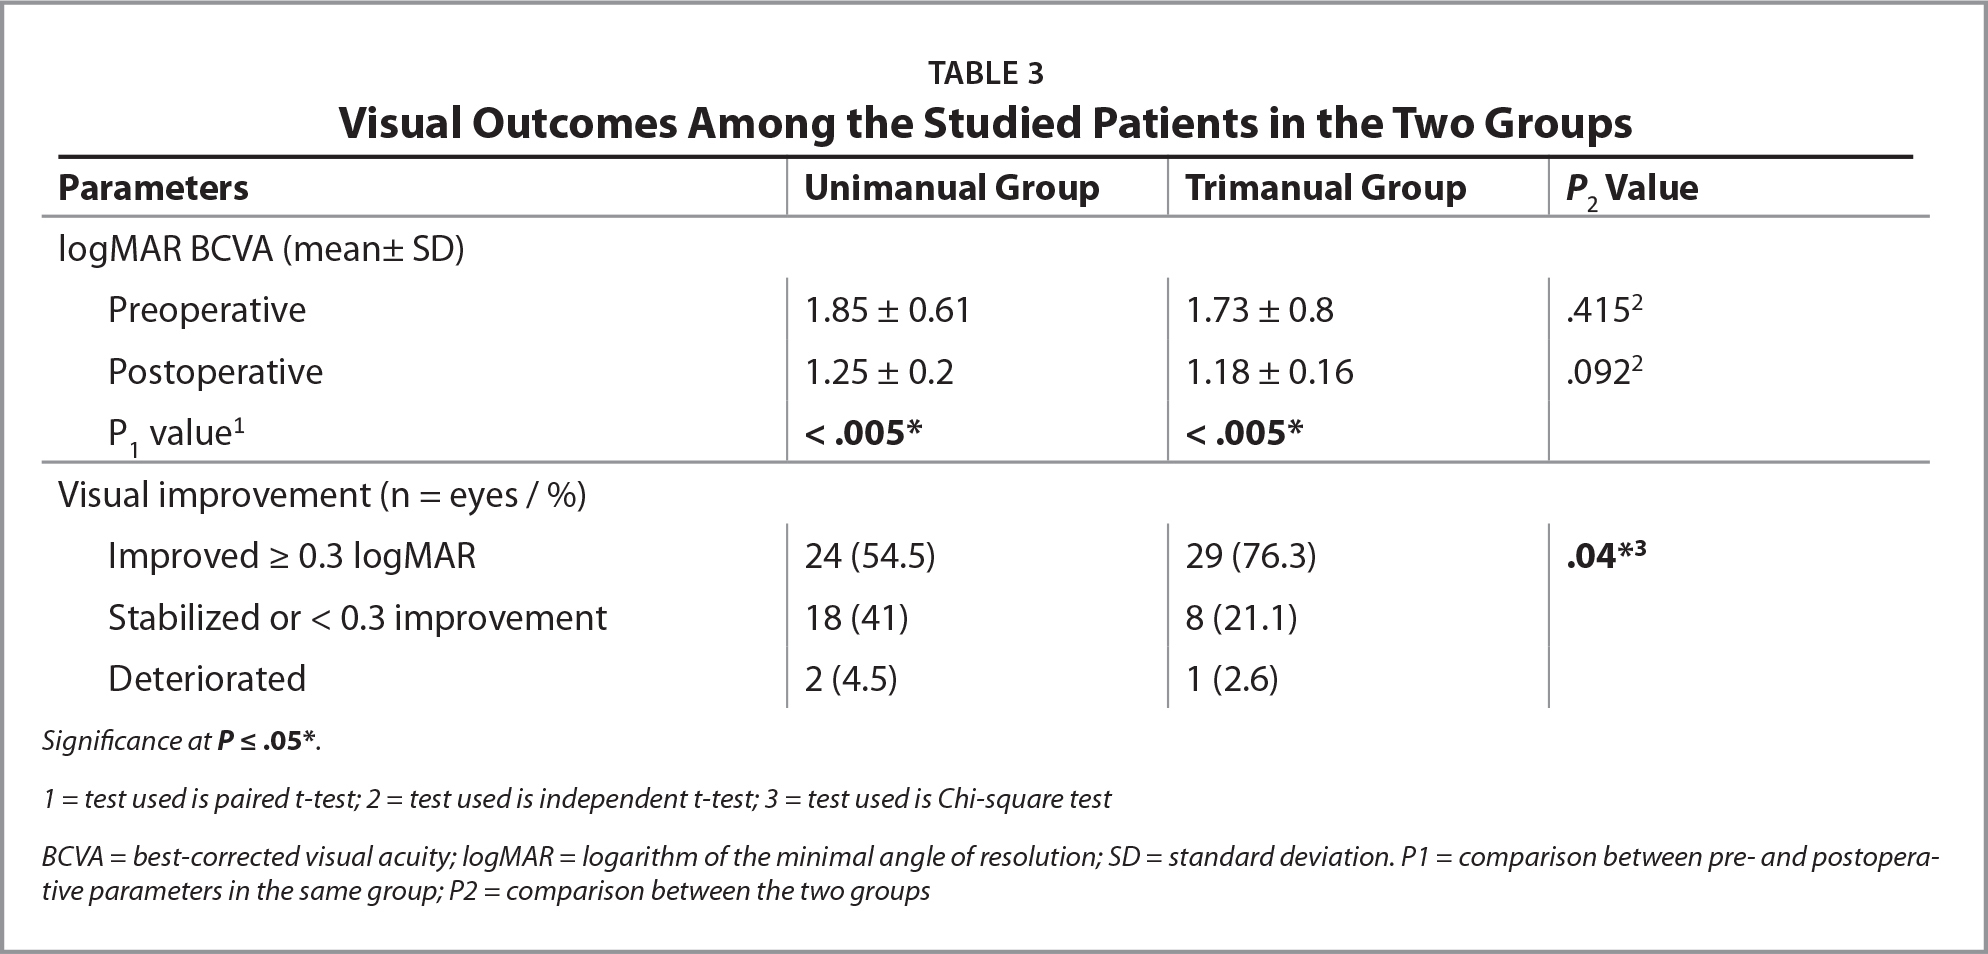 Visual Outcomes Among the Studied Patients in the Two Groups